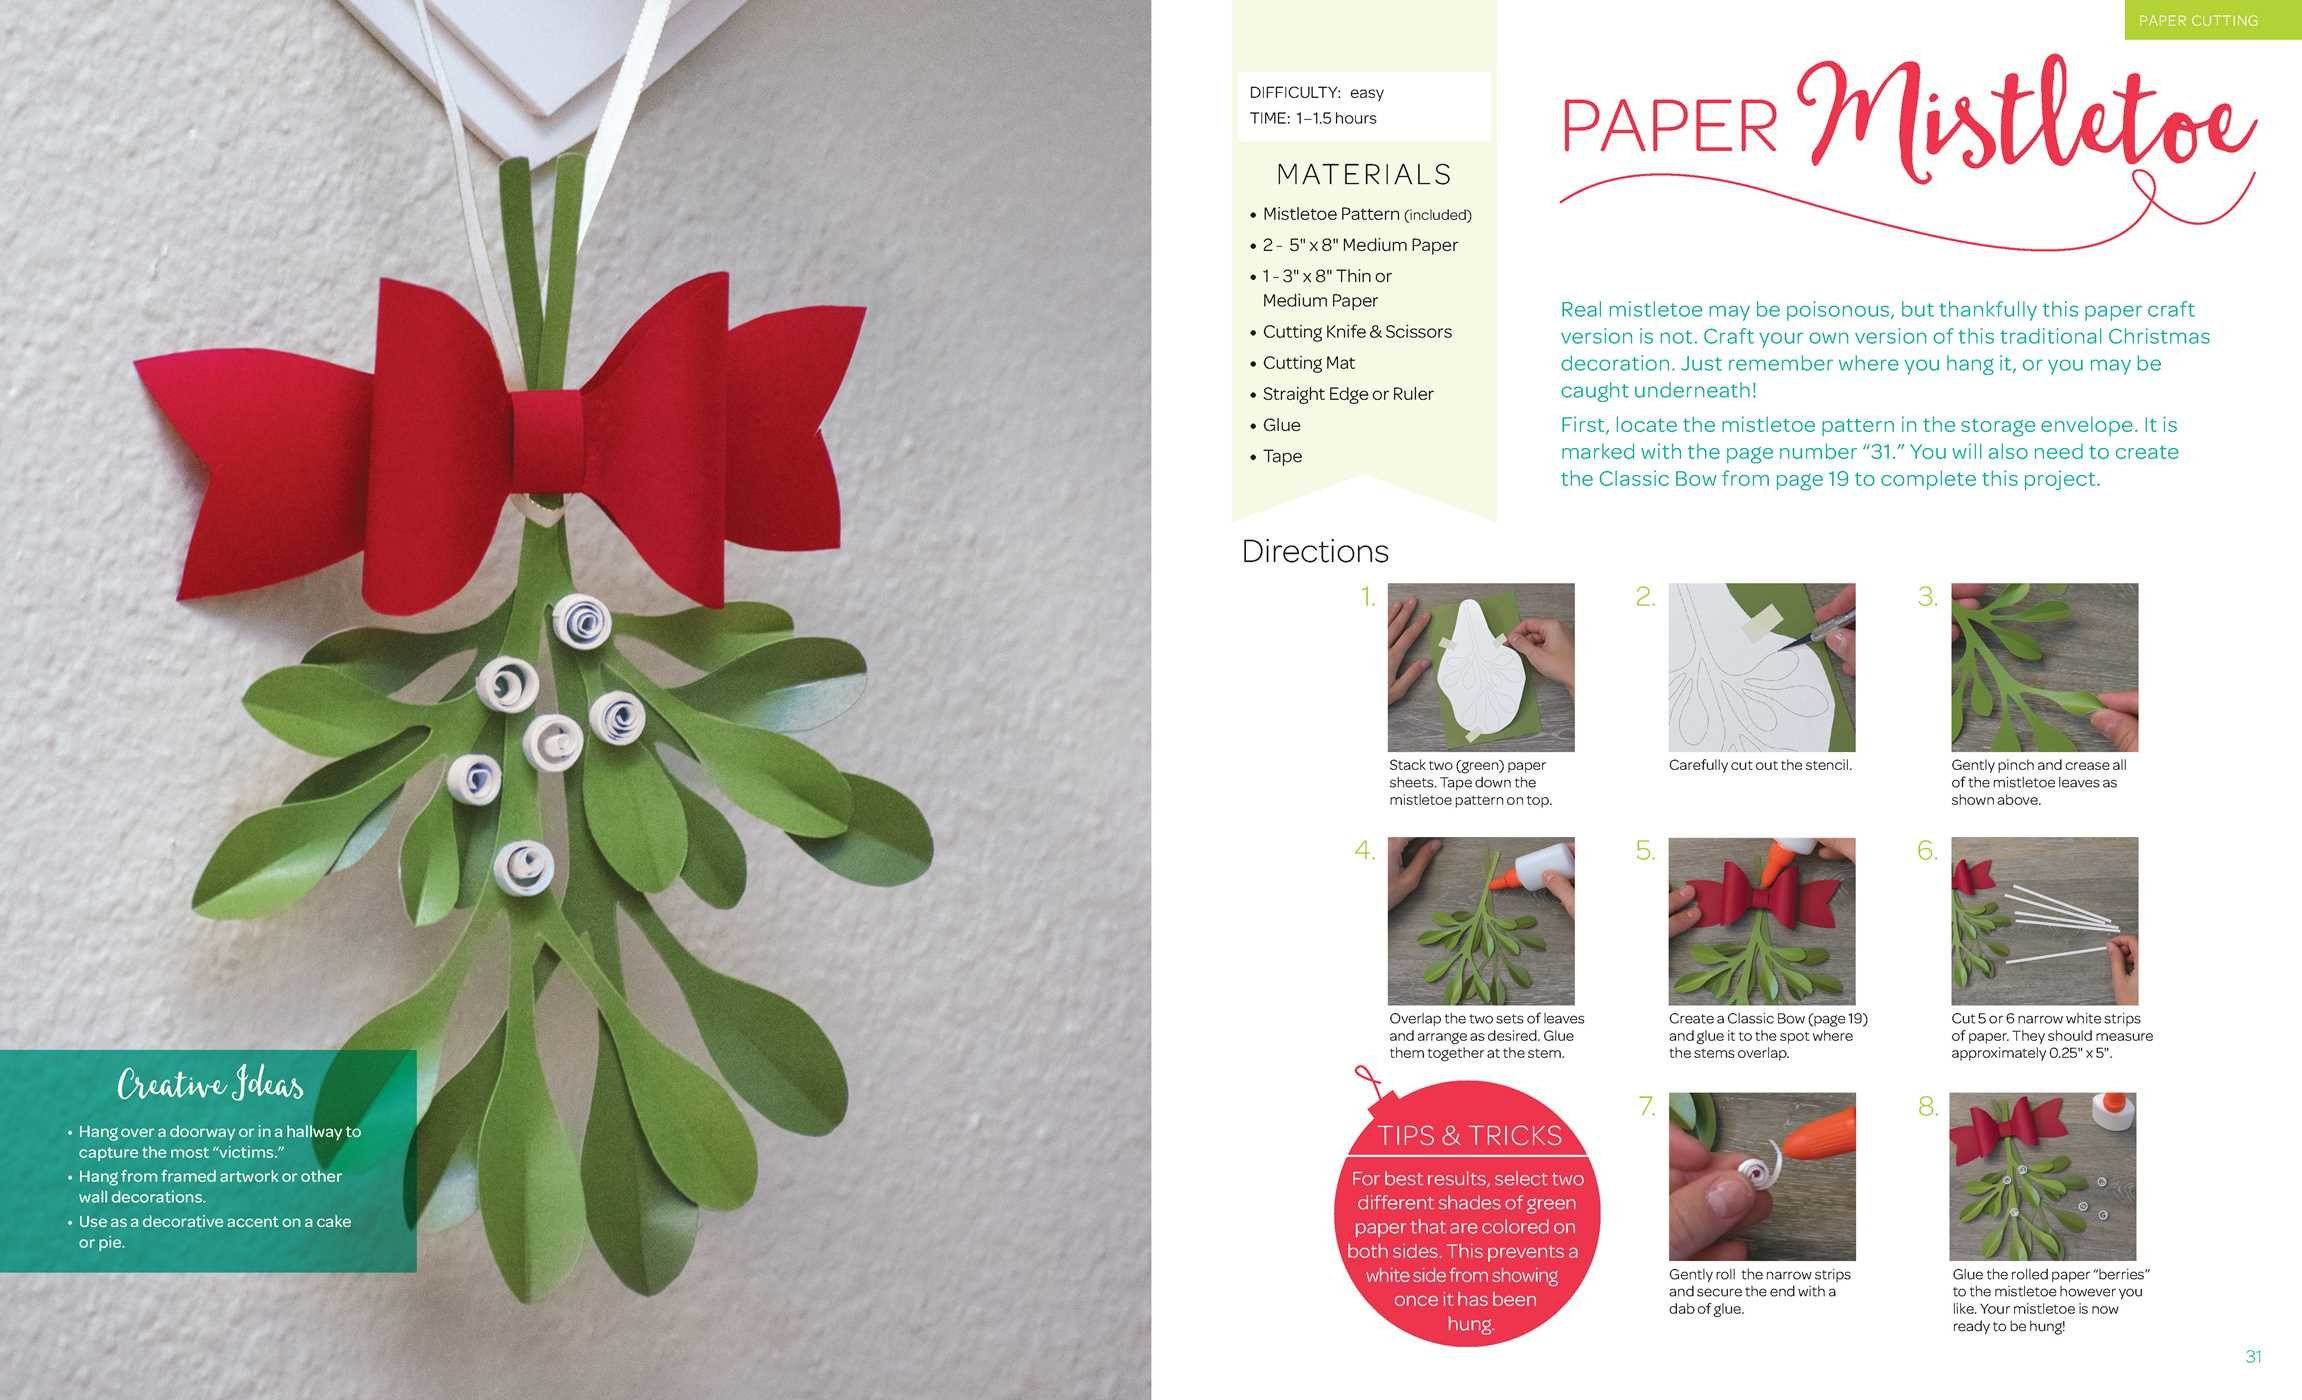 Holiday Paper Crafts 9781681882604in05